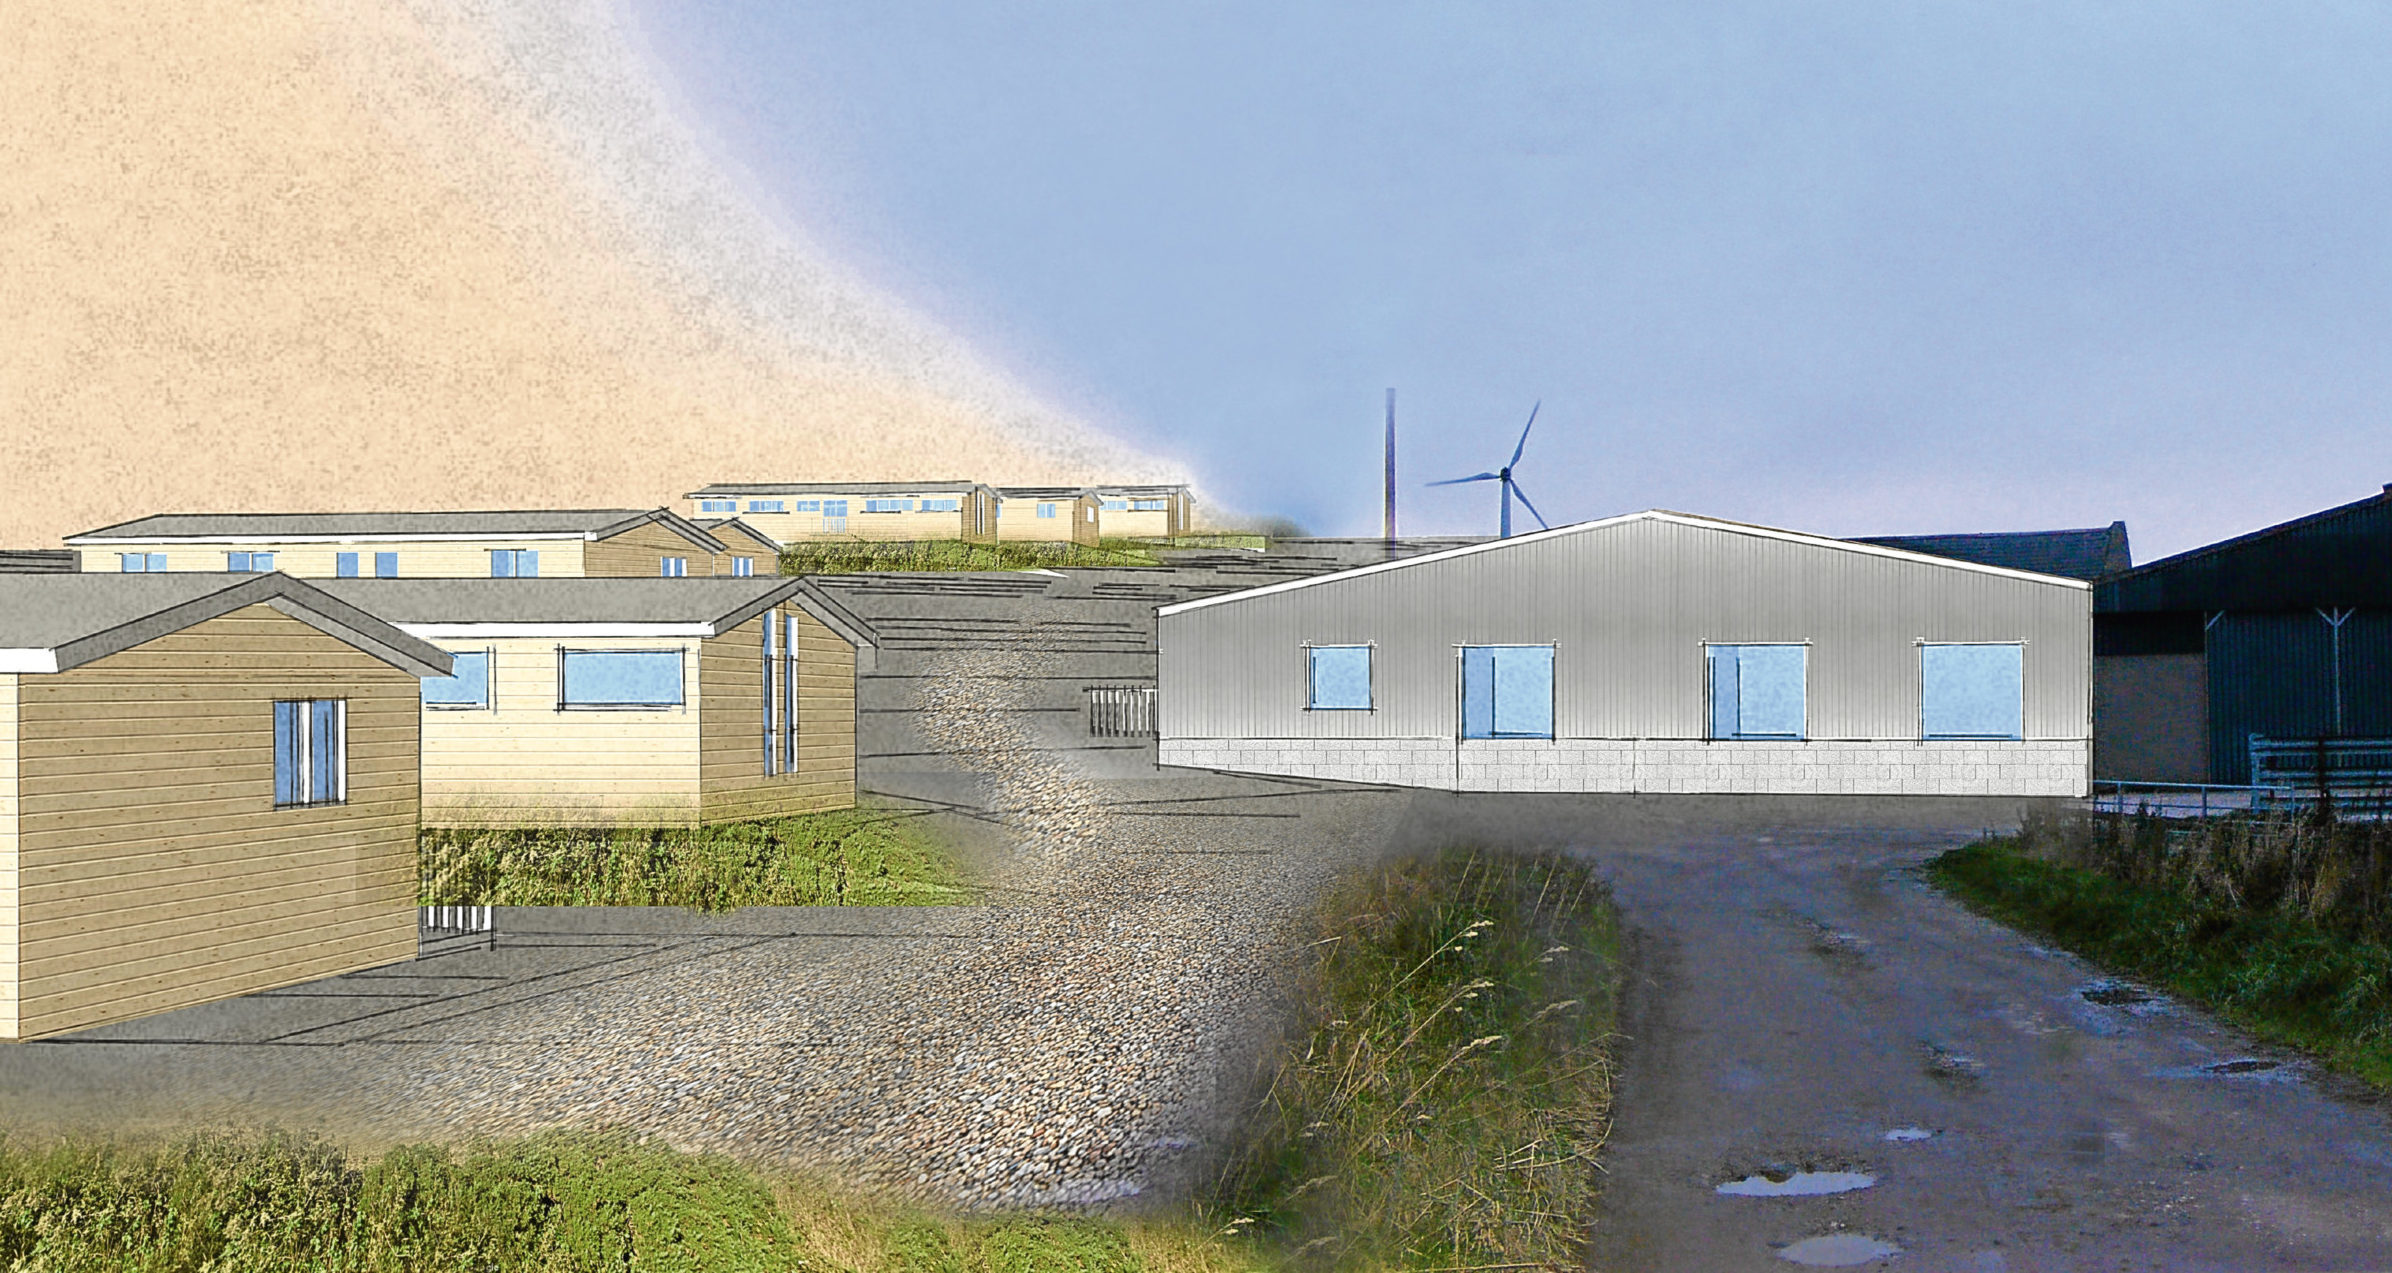 An artist's impression of the proposed rehabilitation centre